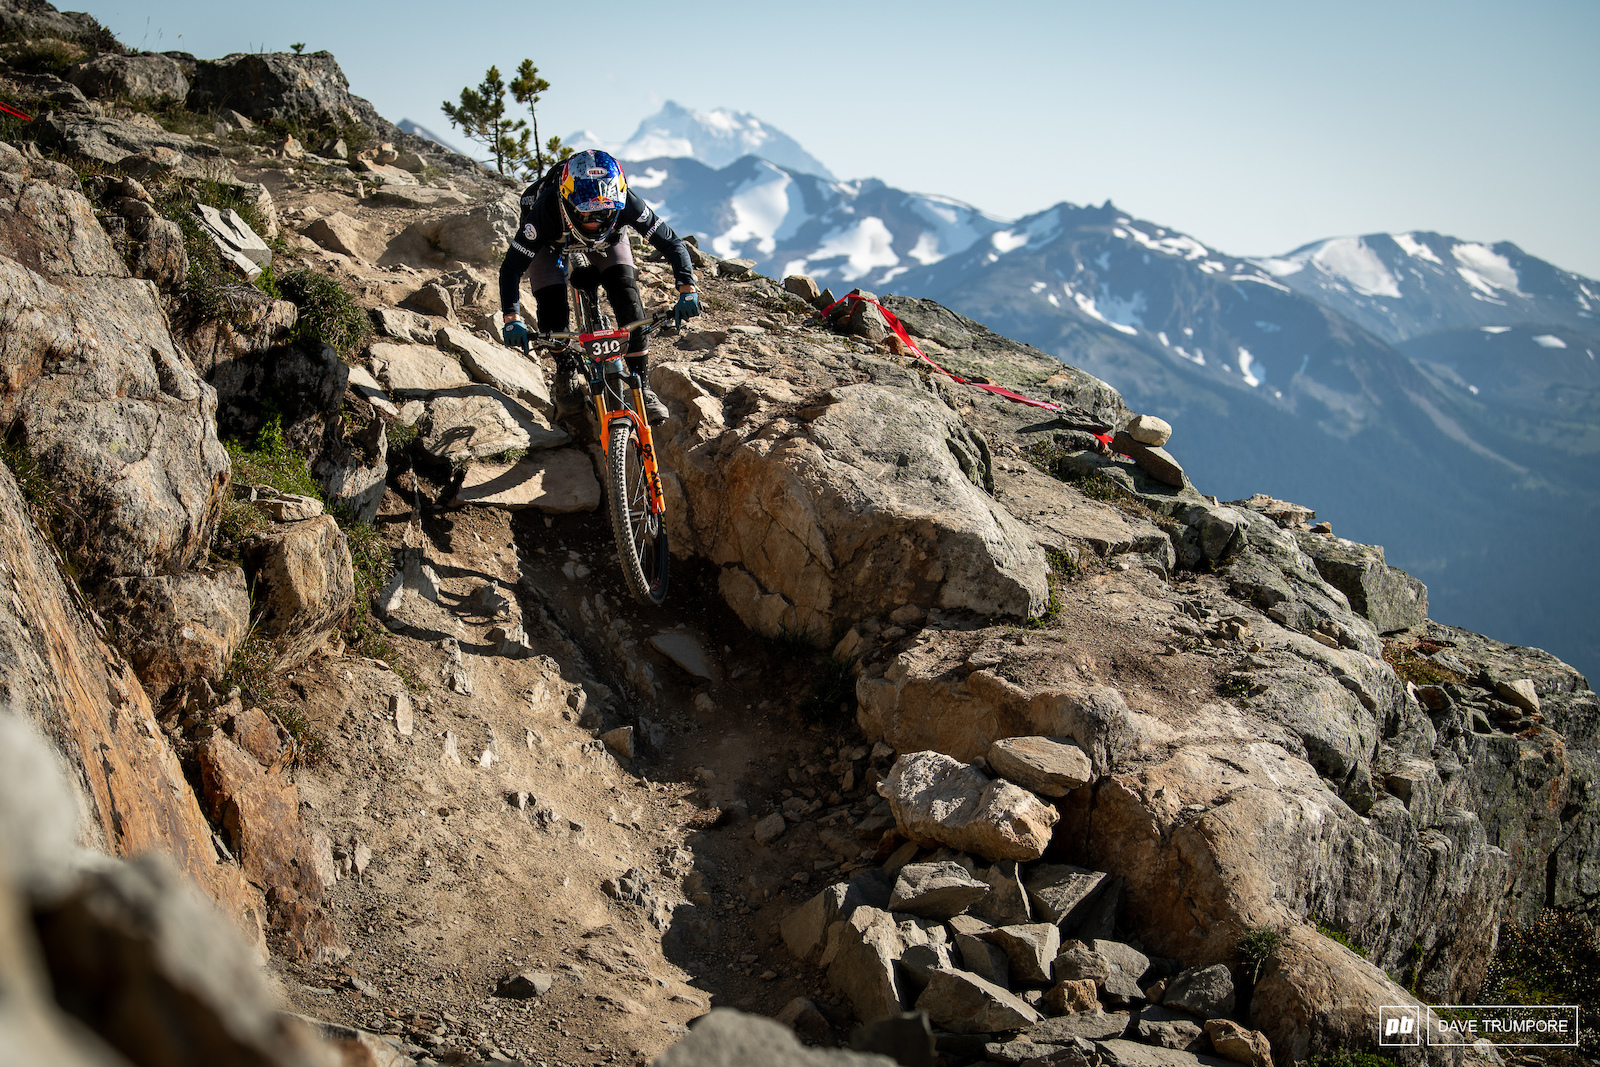 Jill Kintner returns to EWS racing this weekend and will be looking to back up her podium performance from earlier in the season